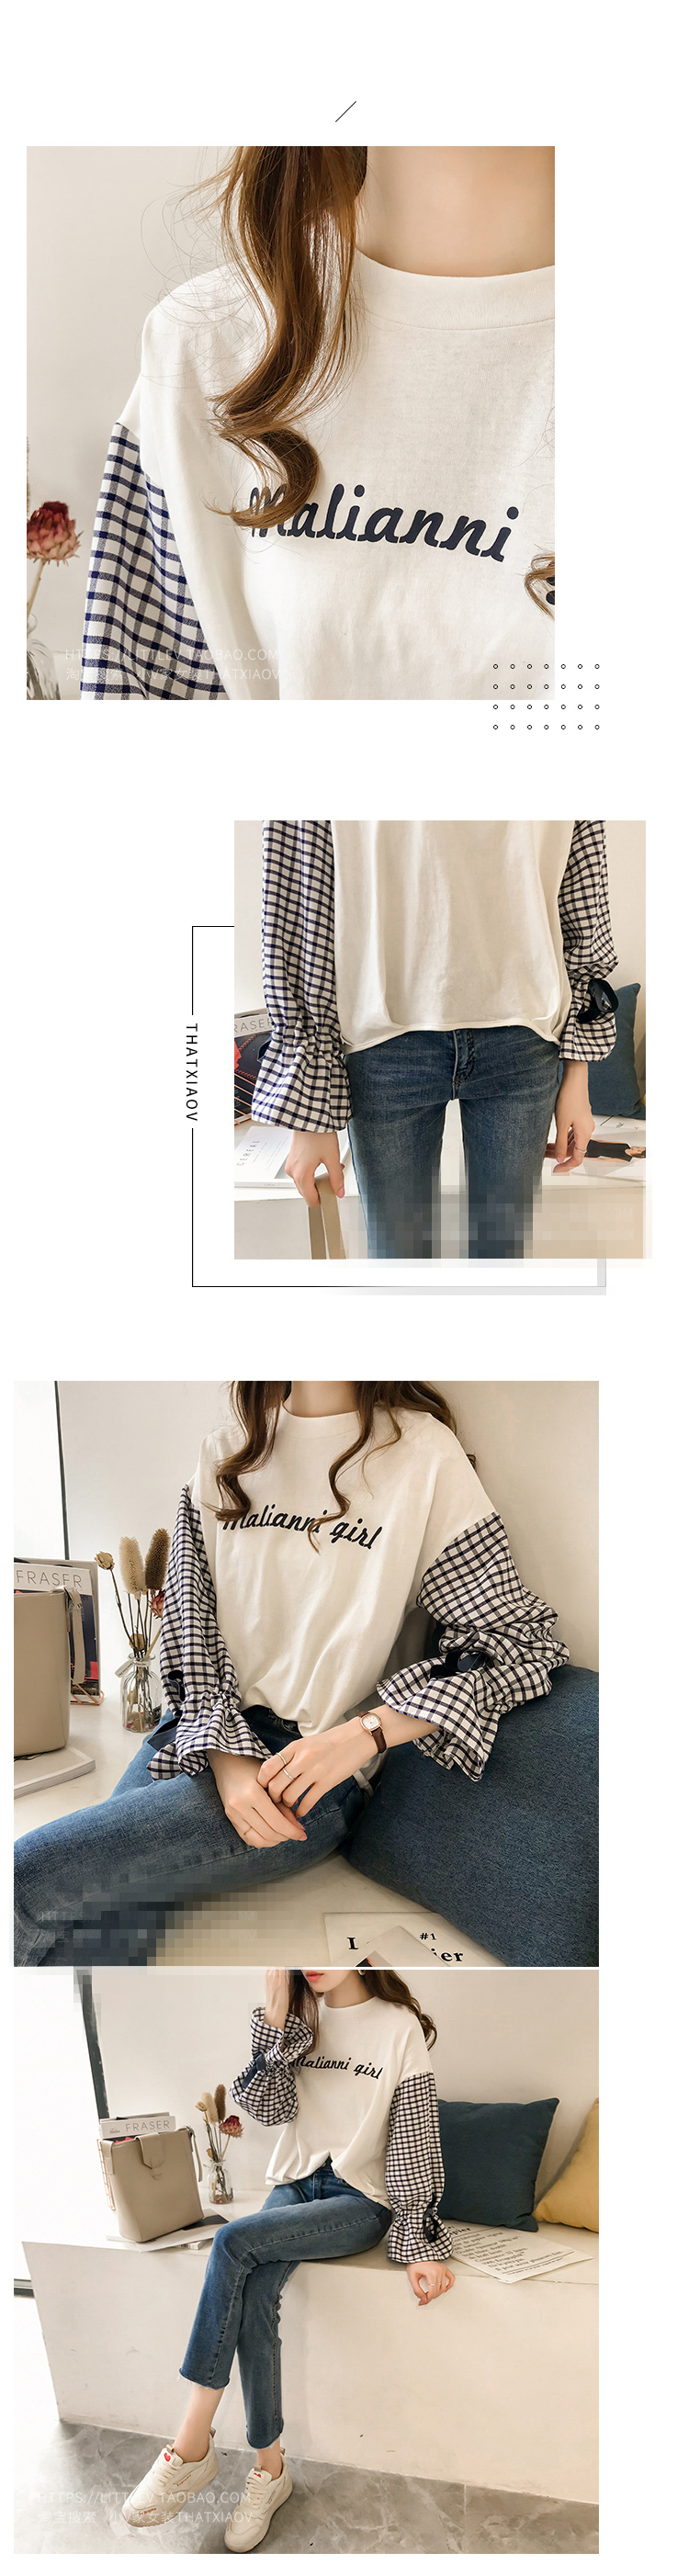 M-4xl Plus Size Cotton Casual T-shirts Women Plaid Patchwork Flare Sleeve O-neck Tshirts Harajuku Fake Two Piece Loose Tees Tops 14